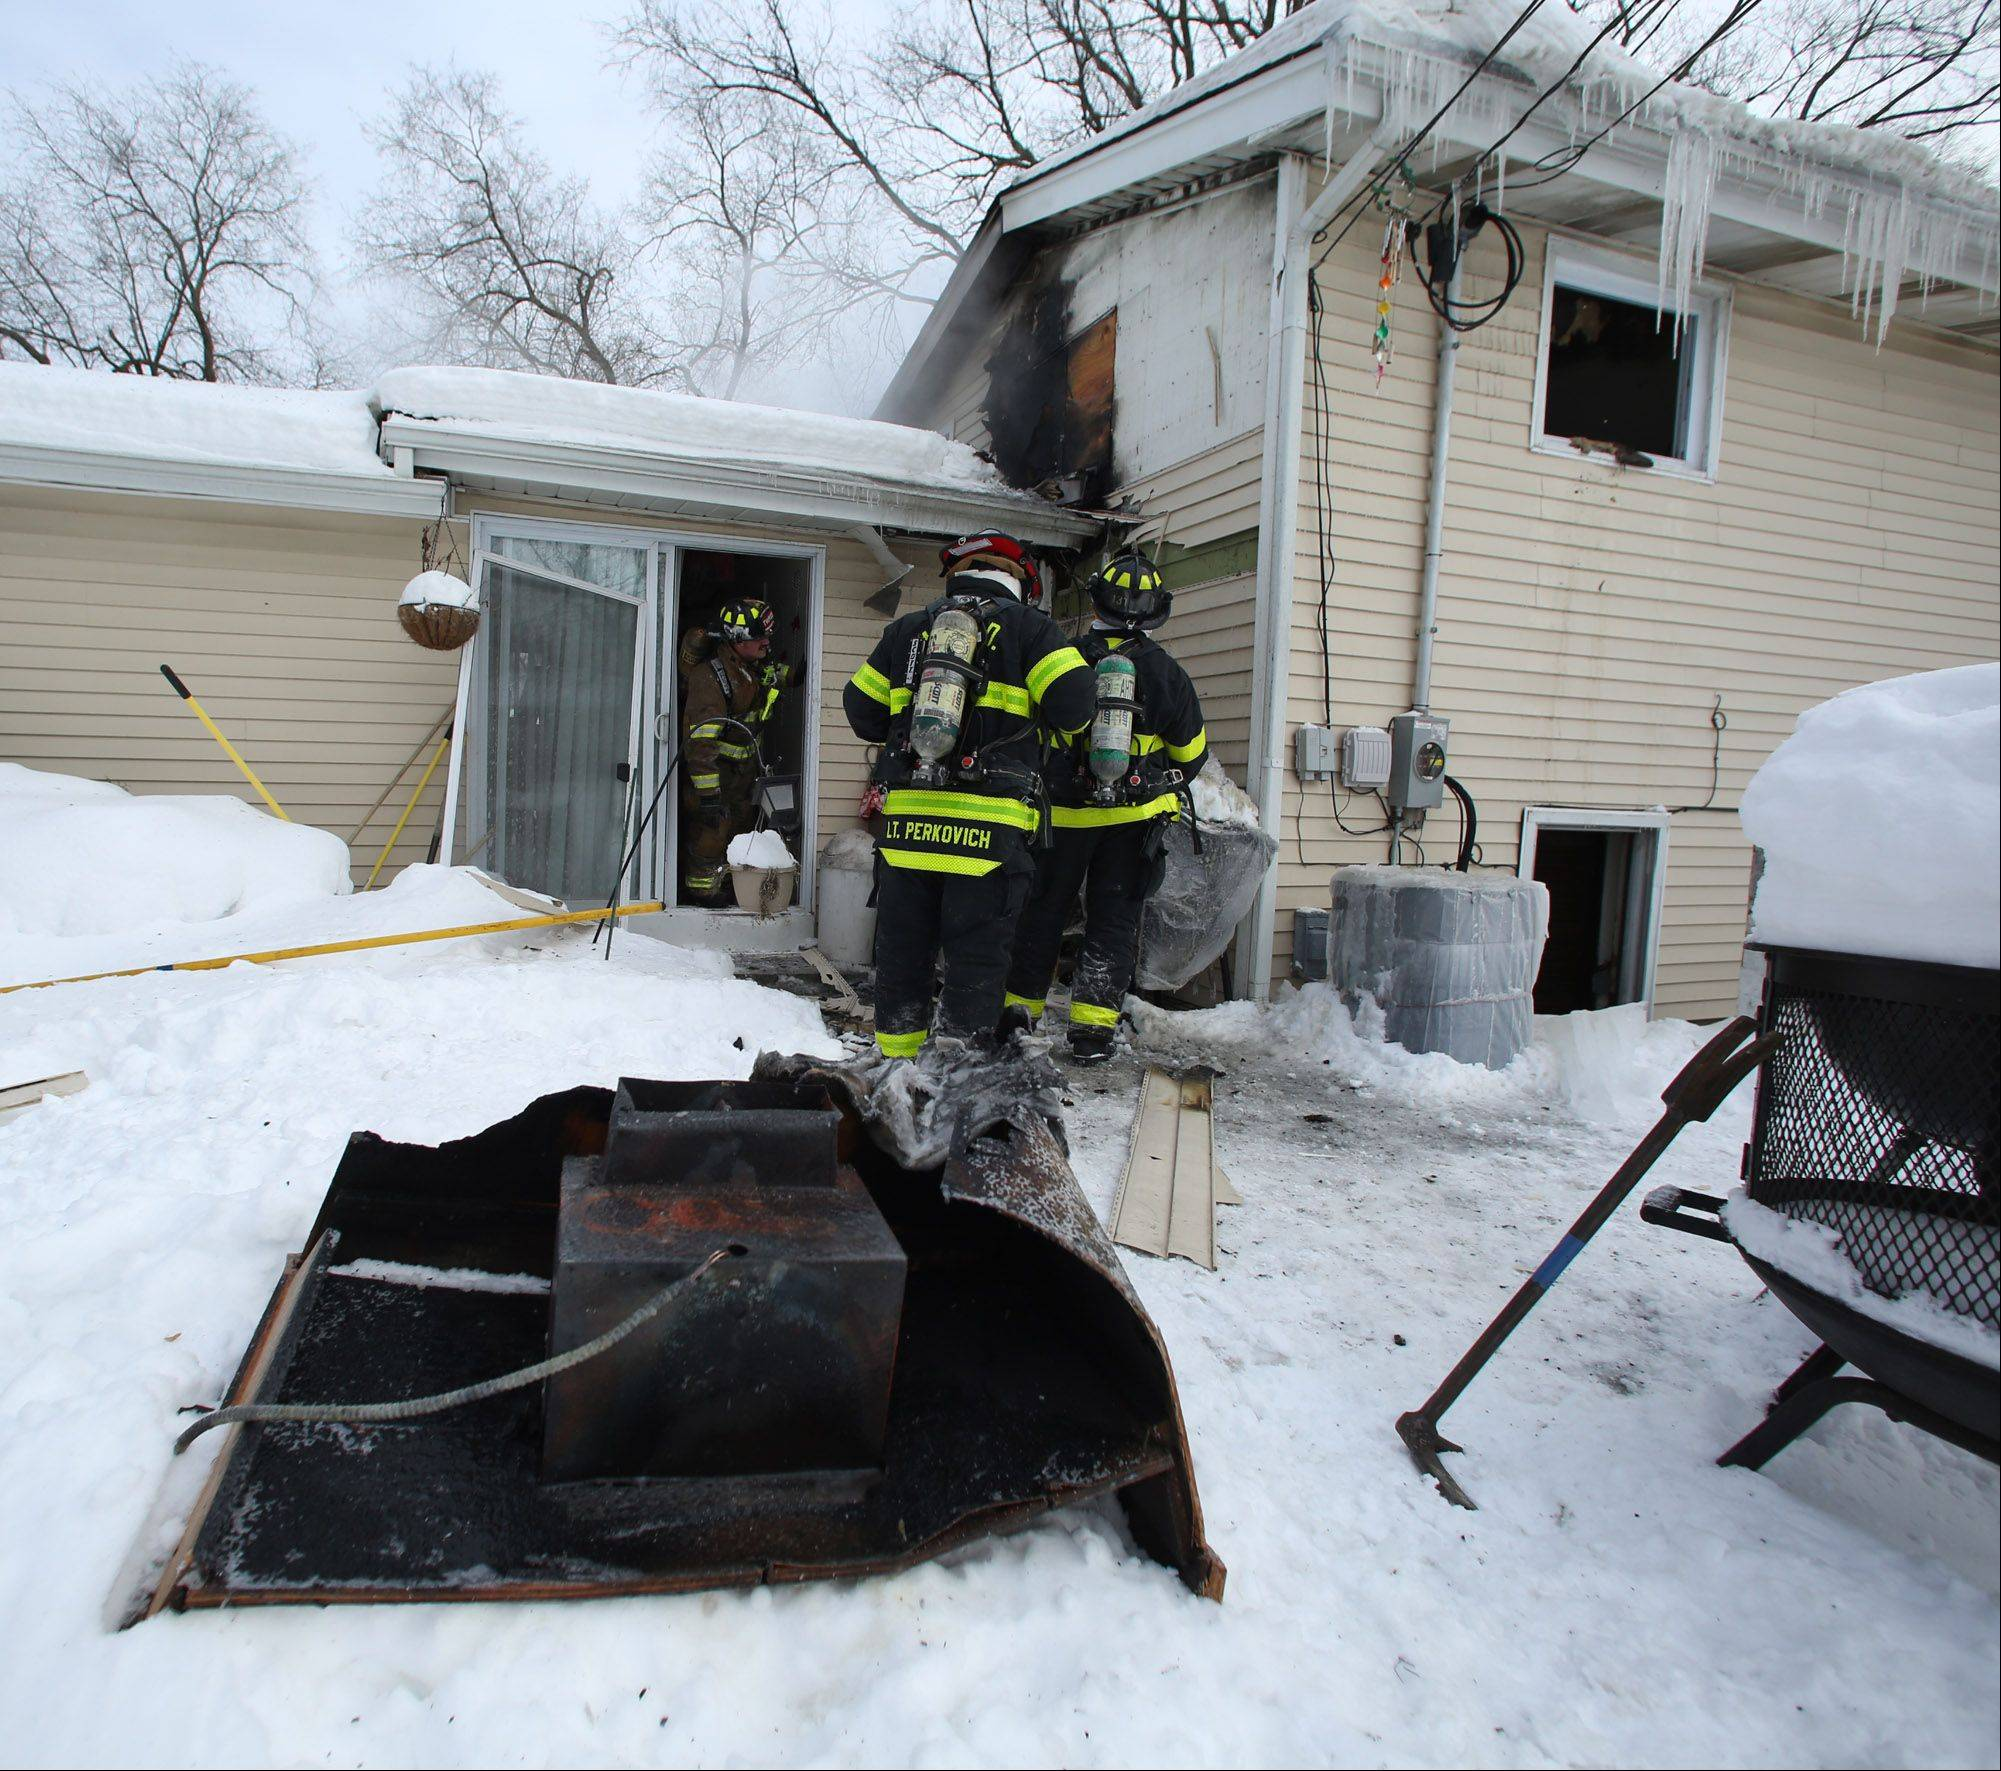 A charred metal object was among the items damaged Tuesday afternoon in a house fire on the 1600 block of Yale Avenue in Arlington Heights.